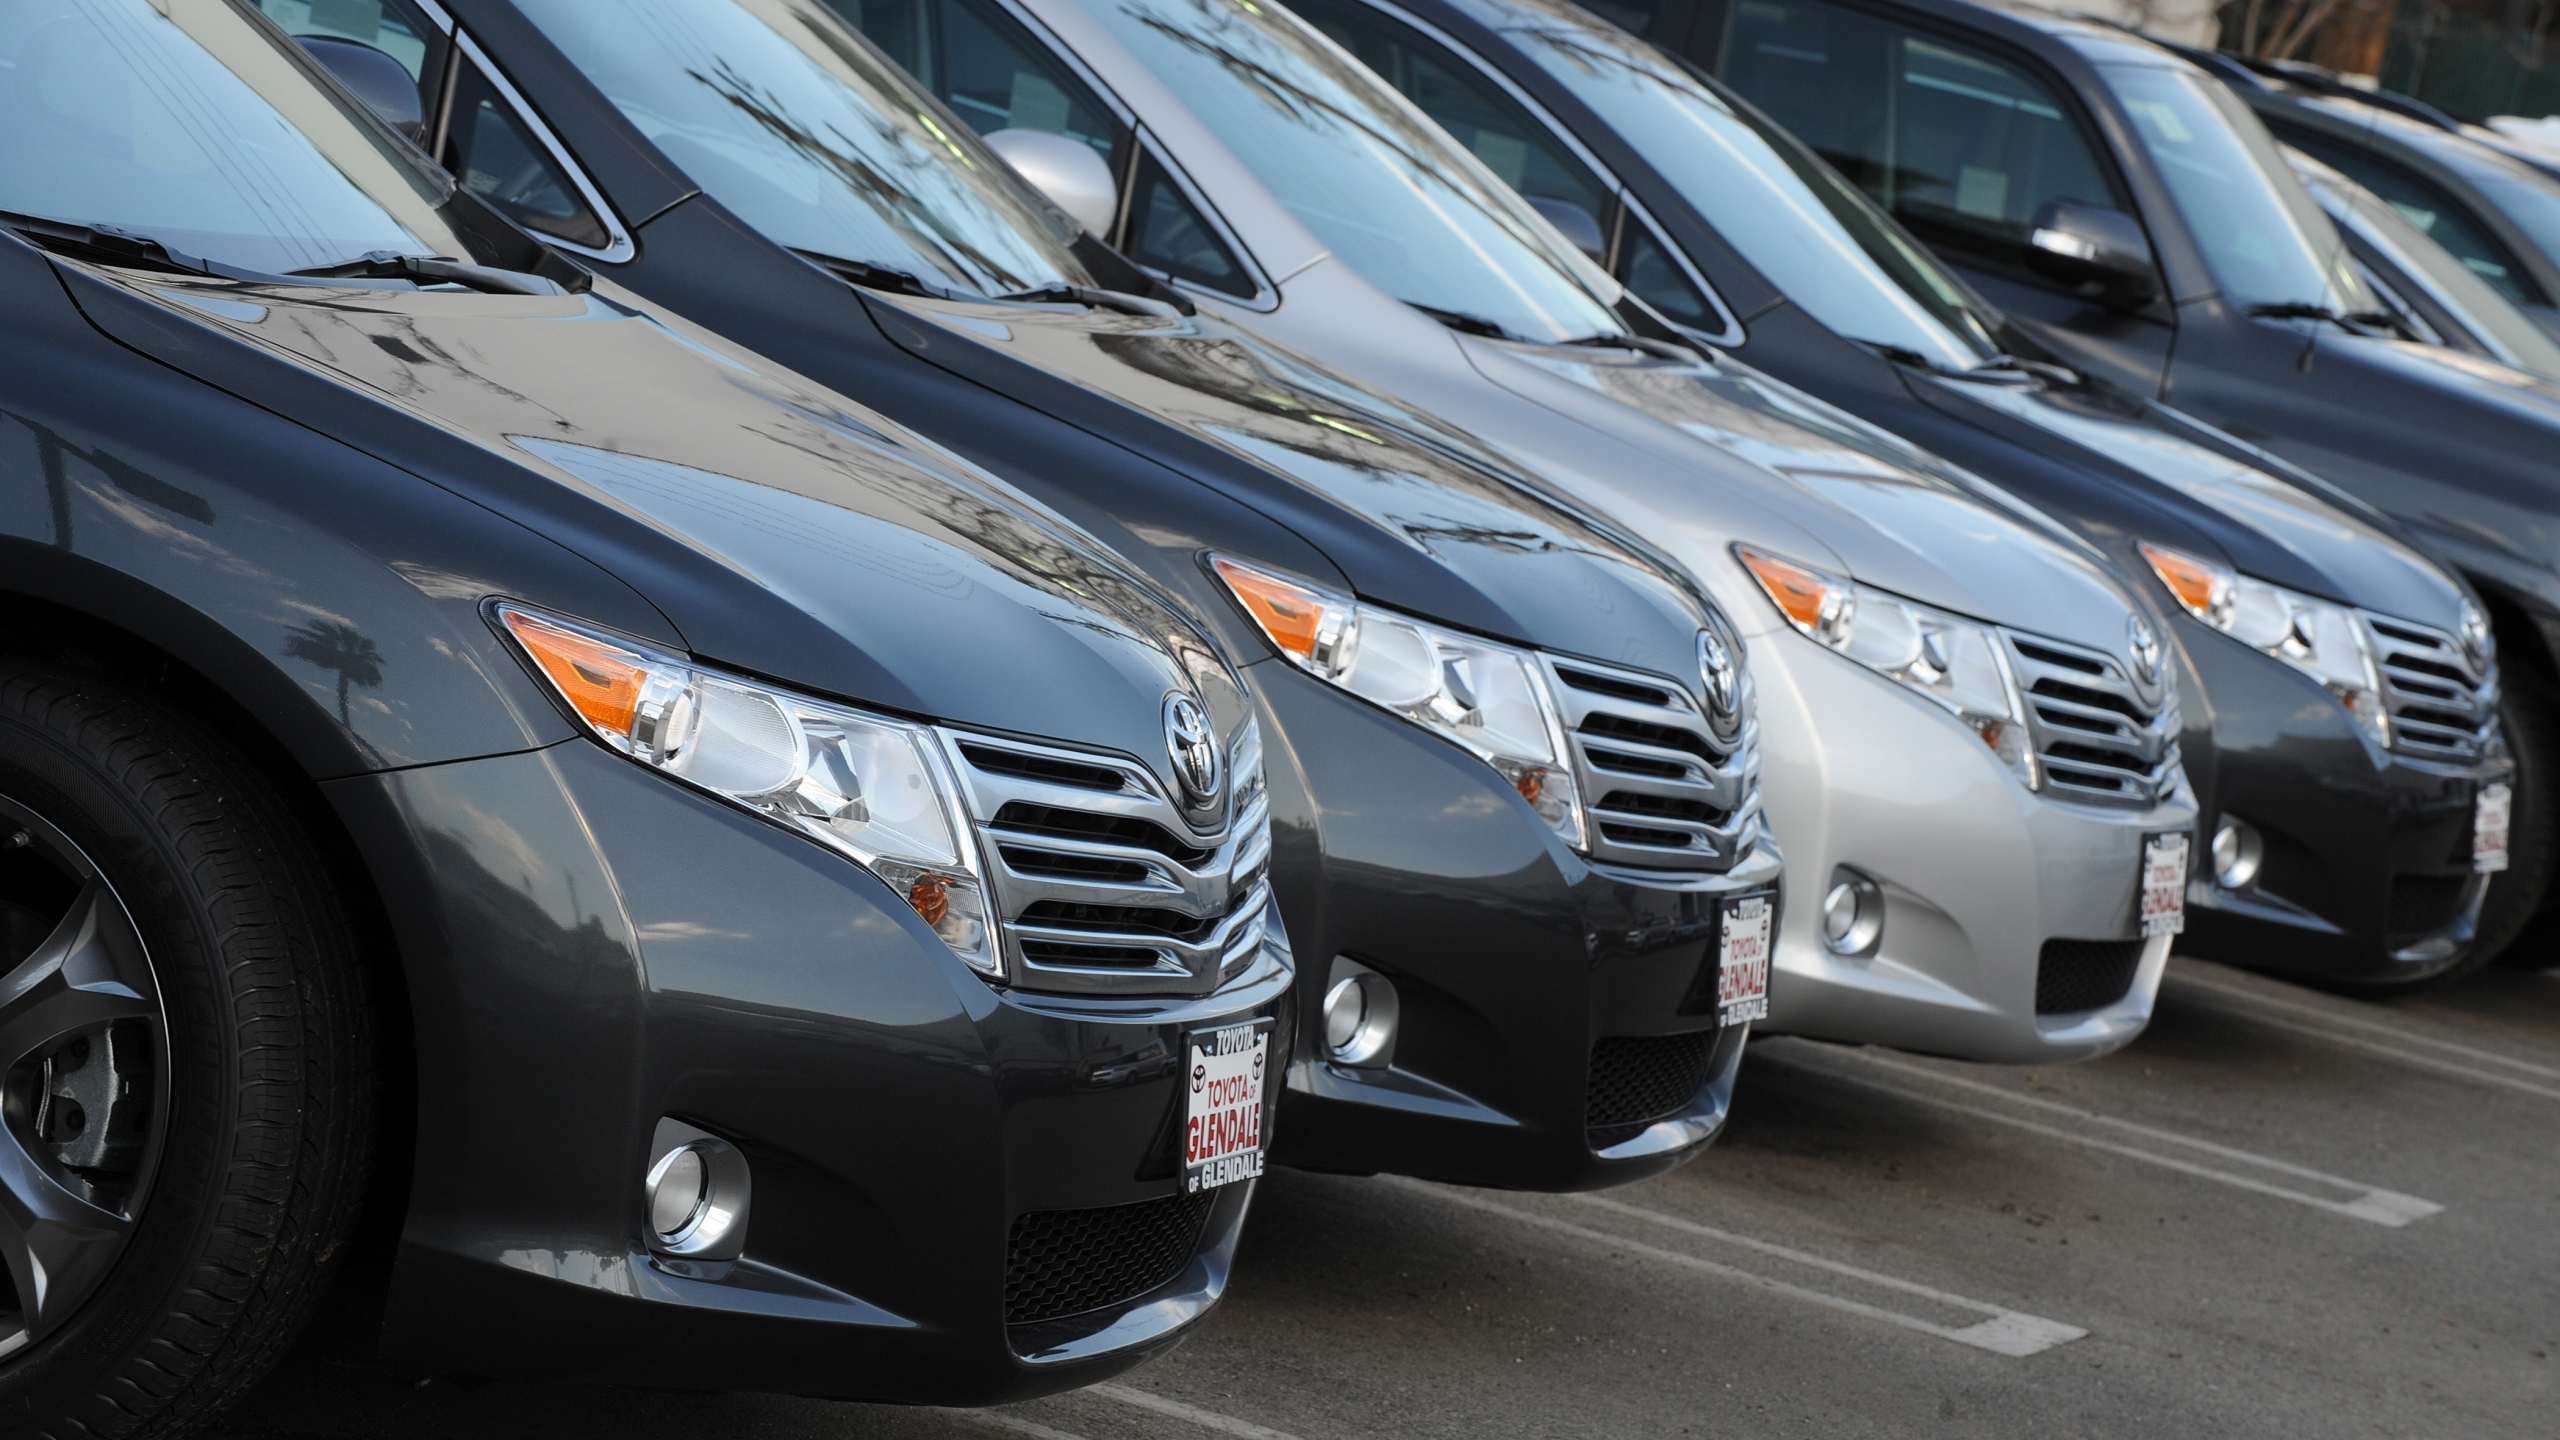 Toyota cars for sale at a Toyota dealer in Los Angeles on January 27, 2010. (MARK RALSTON/AFP via Getty Images)